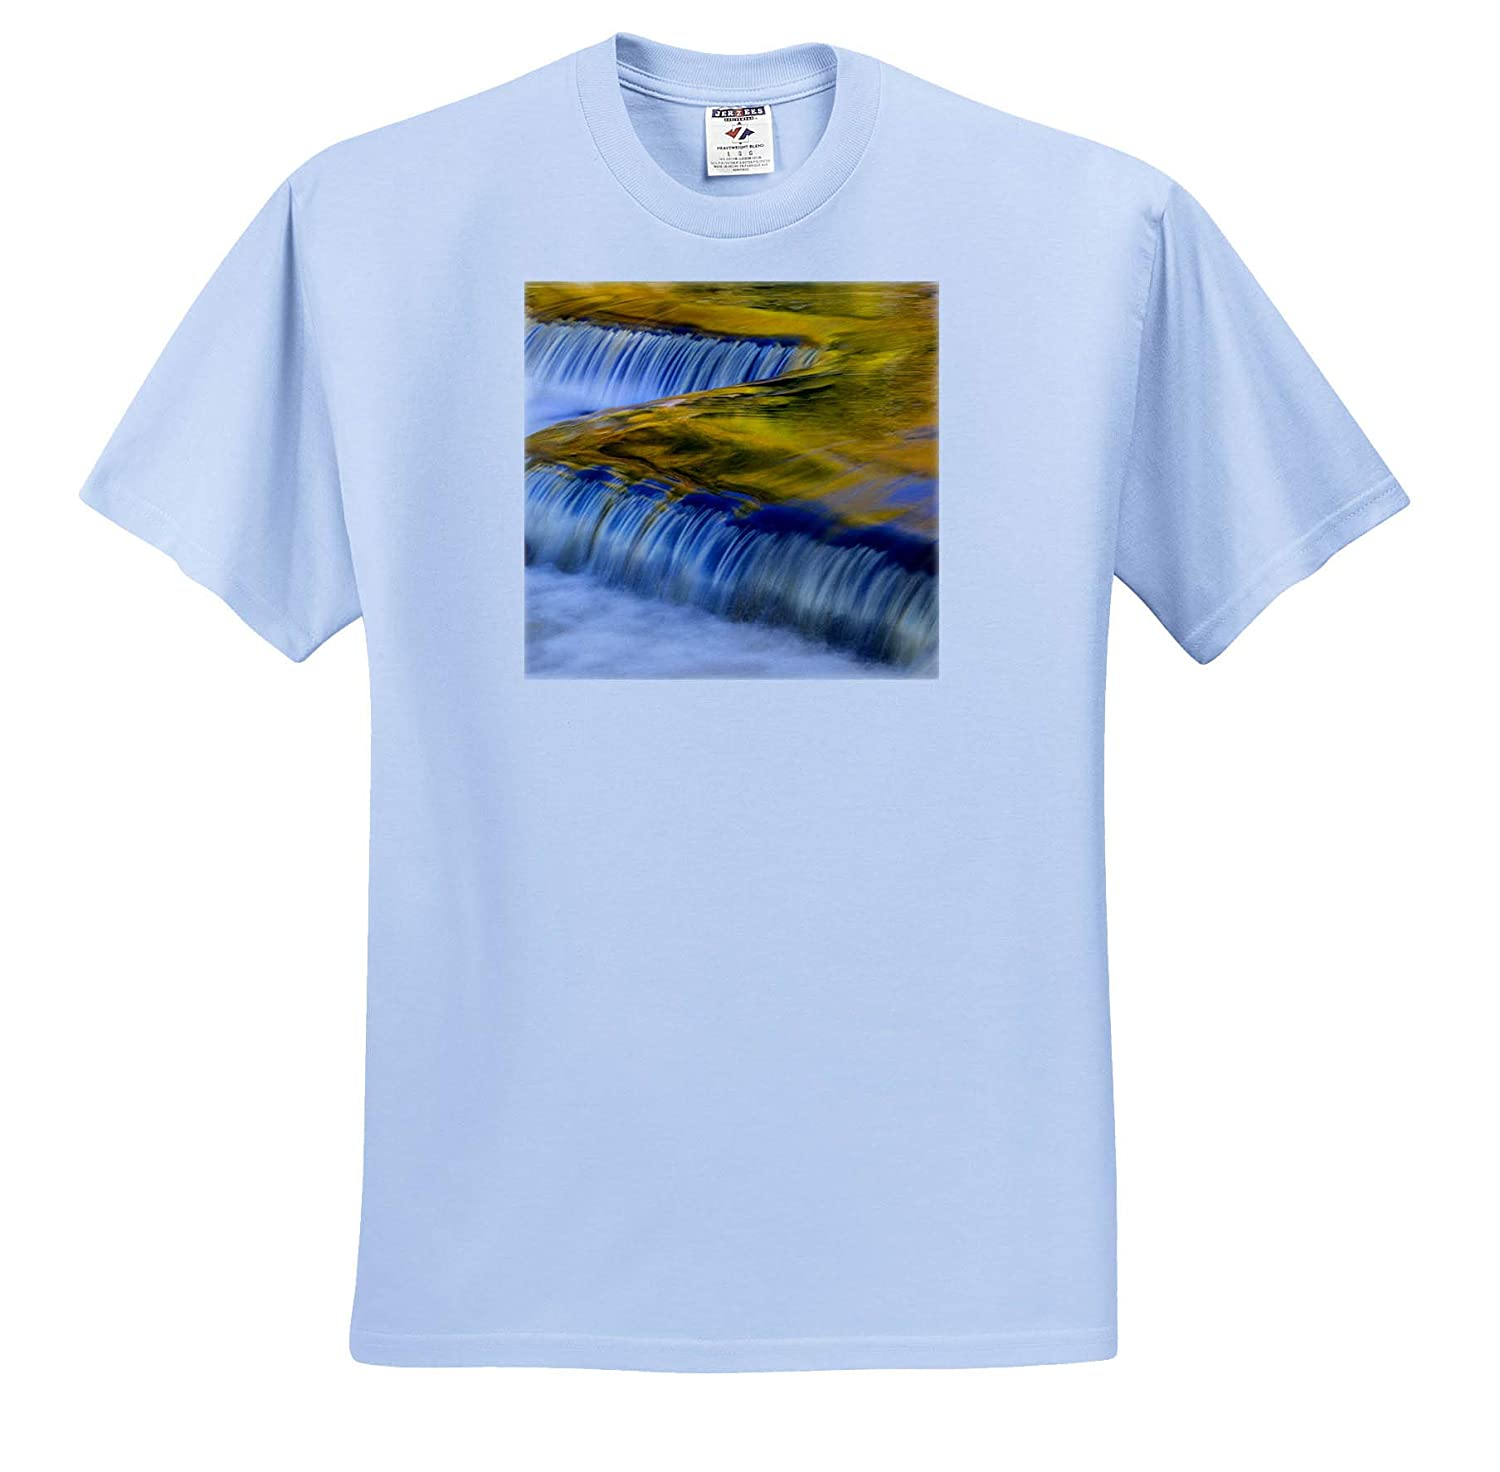 ts/_314861 - Adult T-Shirt XL 3dRose Danita Delimont Autumn Yellow and Gold Reflect from Tree into Waterfall